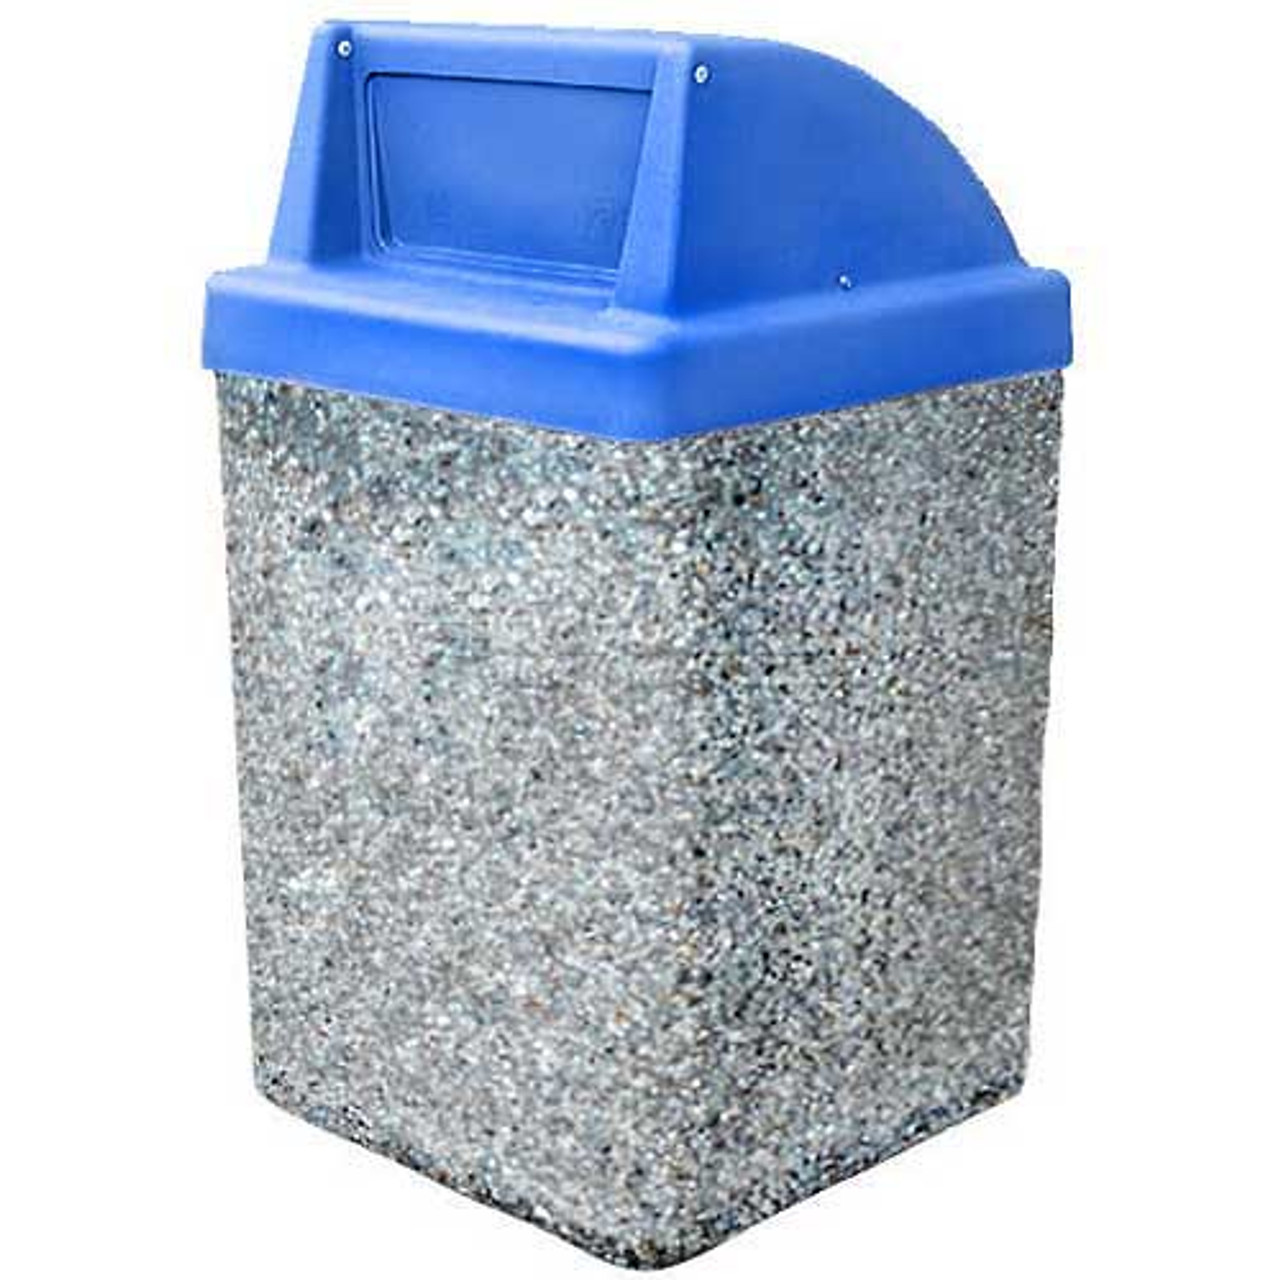 53 Gallon Concrete Push Door Dome Top Outdoor Waste Container TF1030 Exposed